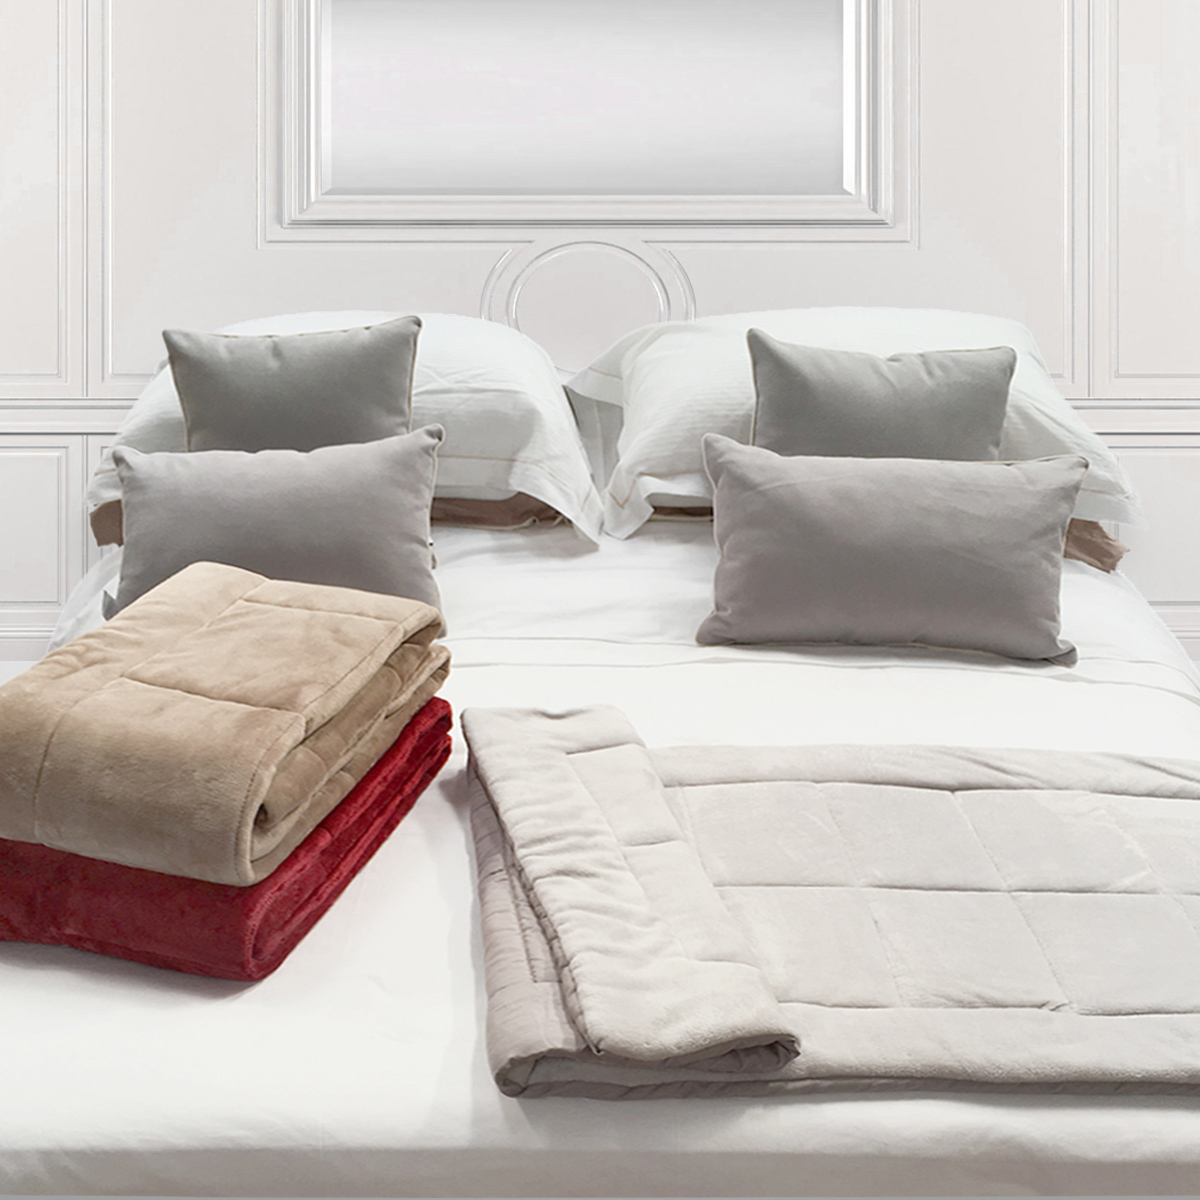 Runner Letto.Sale Of Fiocco Bed Runner Online Sale Of Fiocco Bed Runner